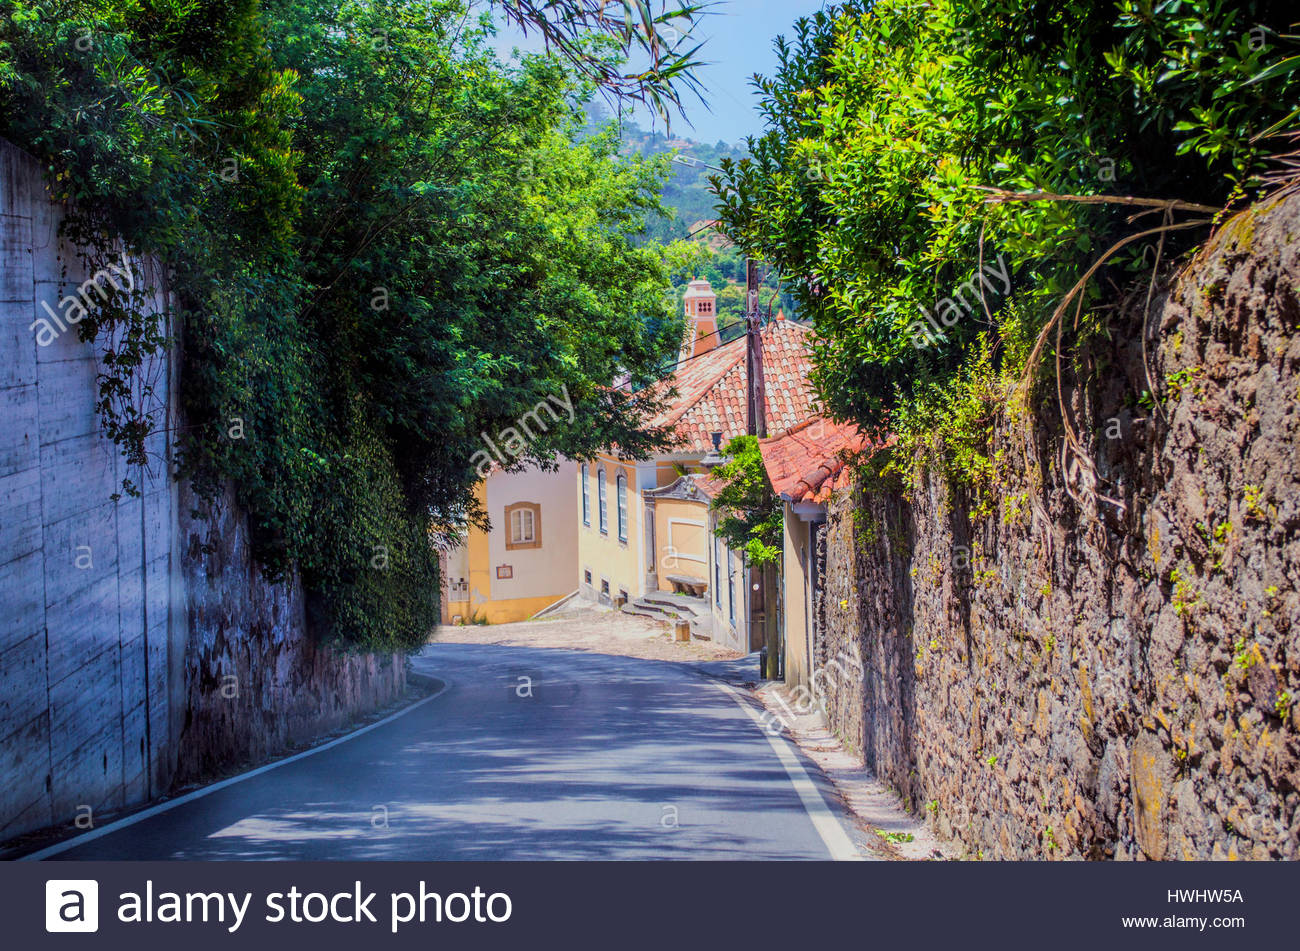 Extemely narrow roads with high stone-walls on both sides climbing up and going dow-hill in the lush area of Sintra. - Stock Image